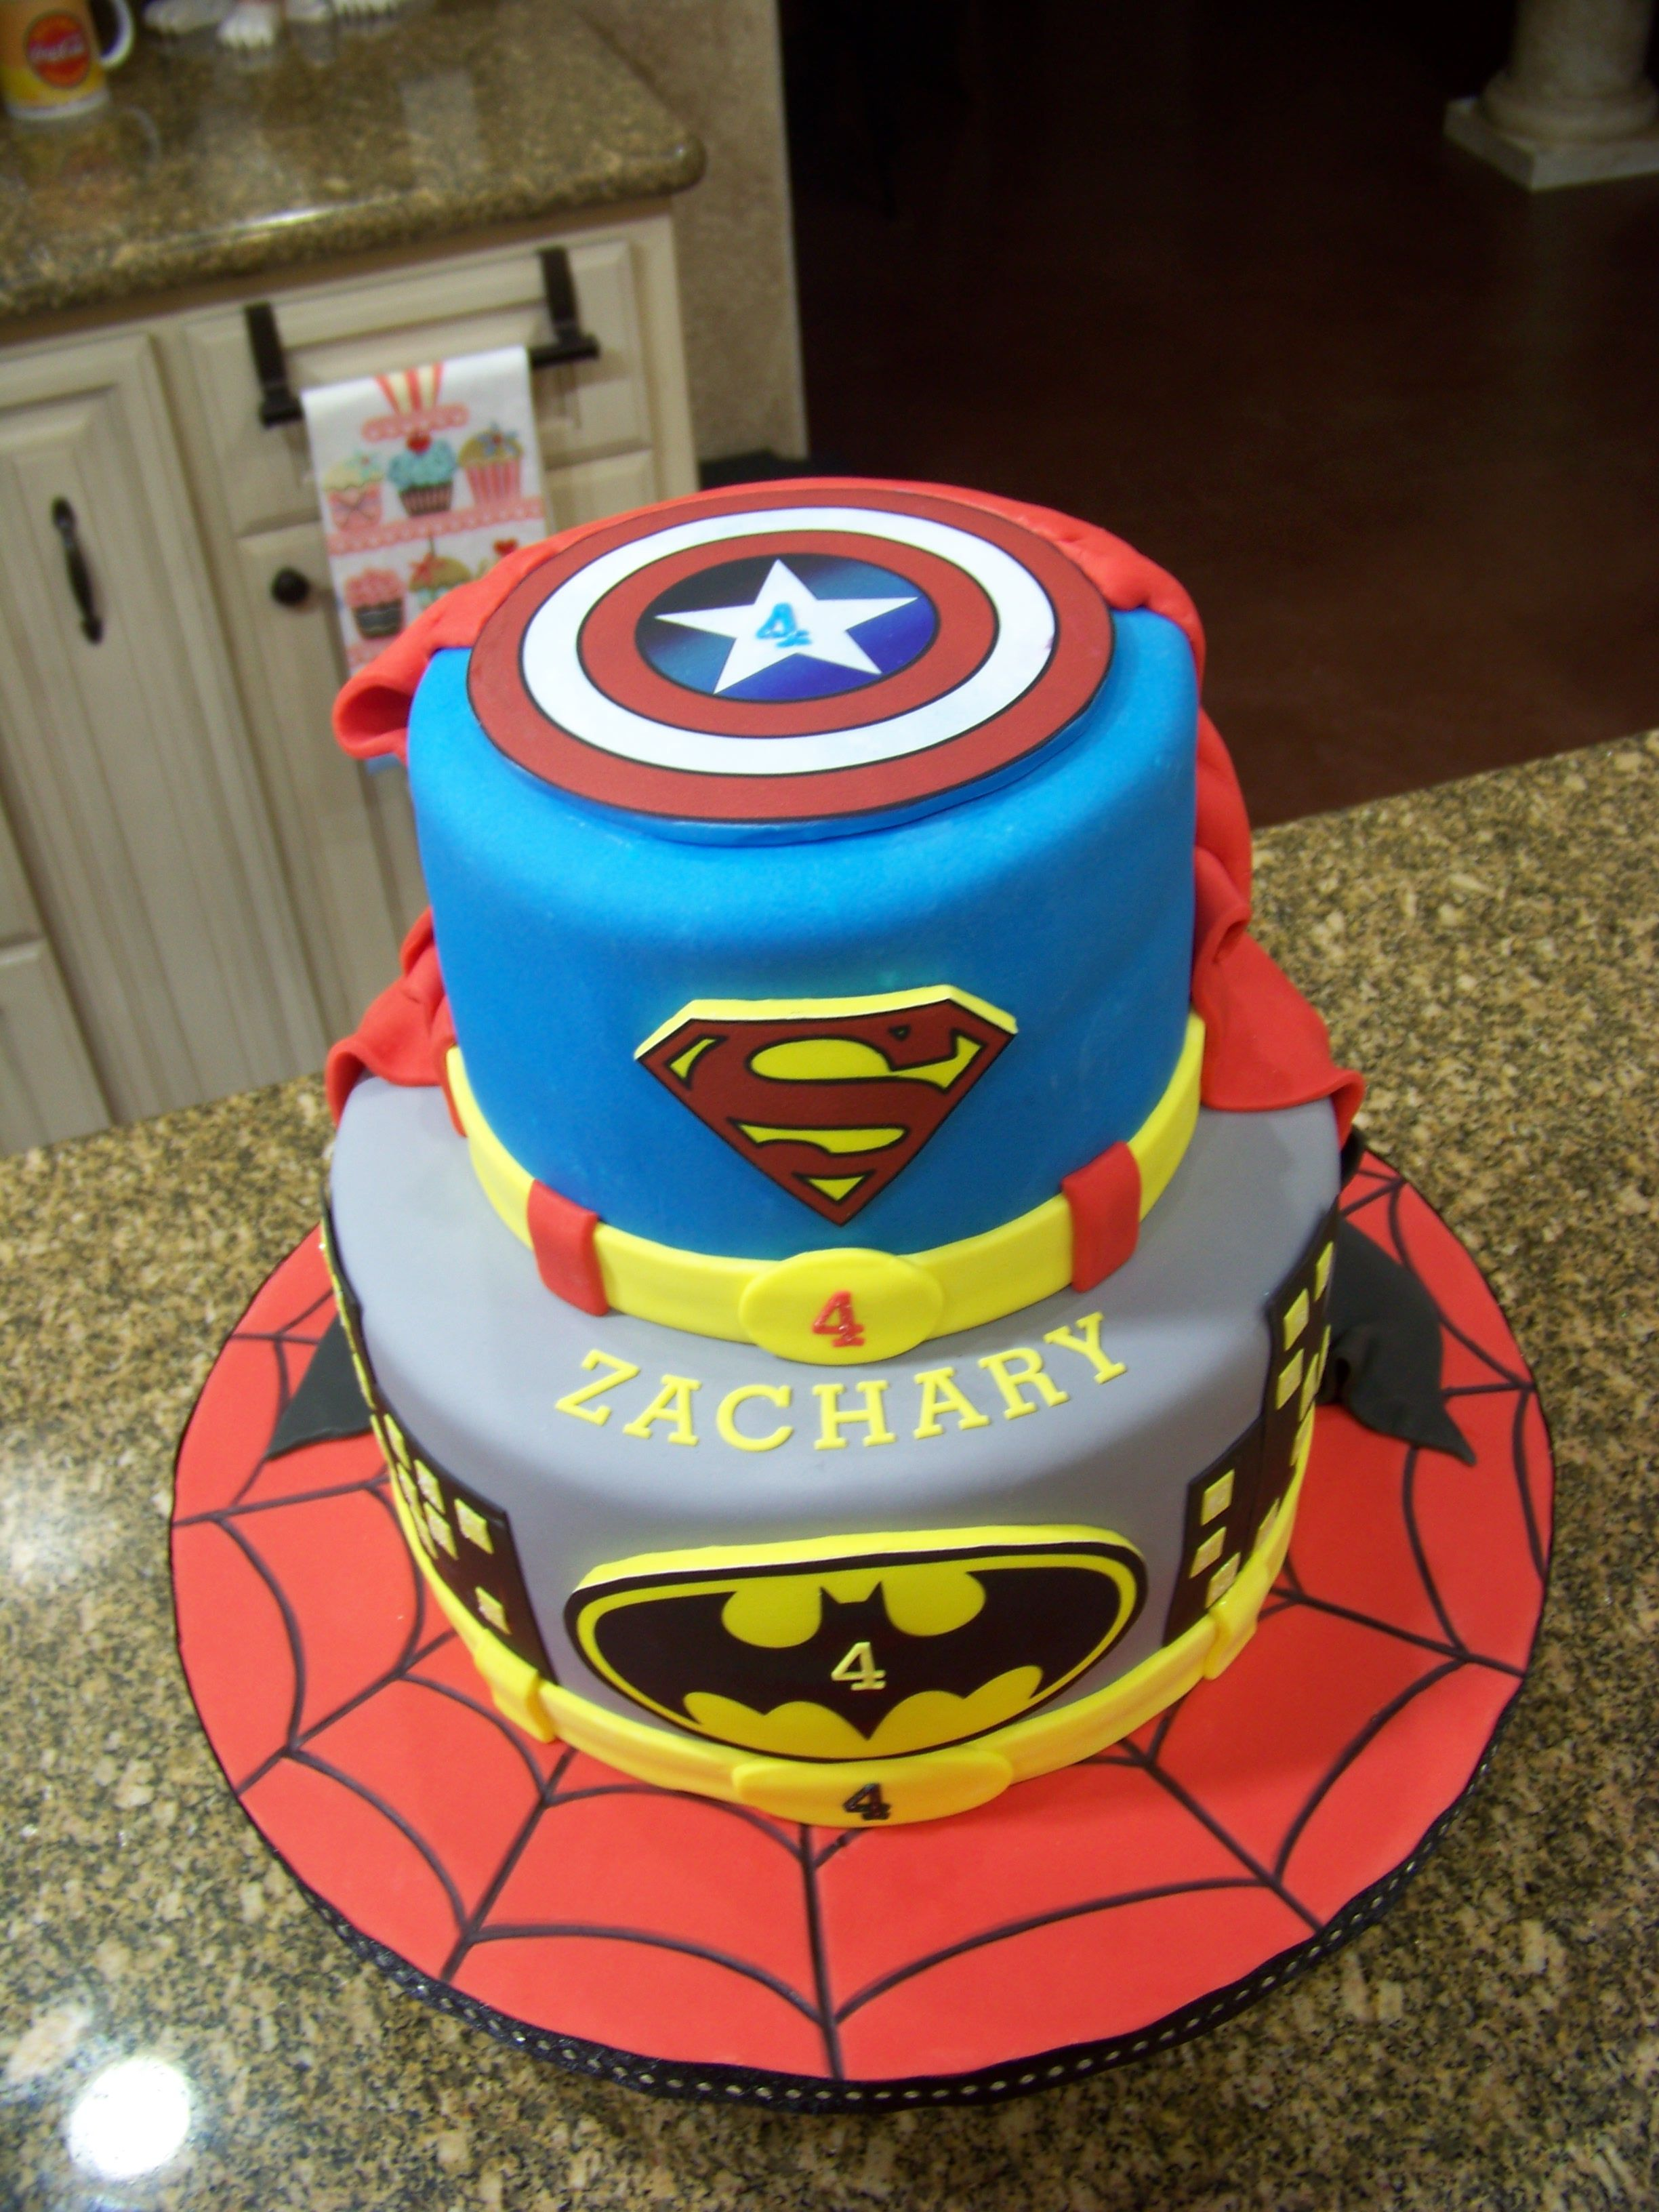 Outstanding Superhero Cake Spiderman Batman Superman Captain America Personalised Birthday Cards Veneteletsinfo